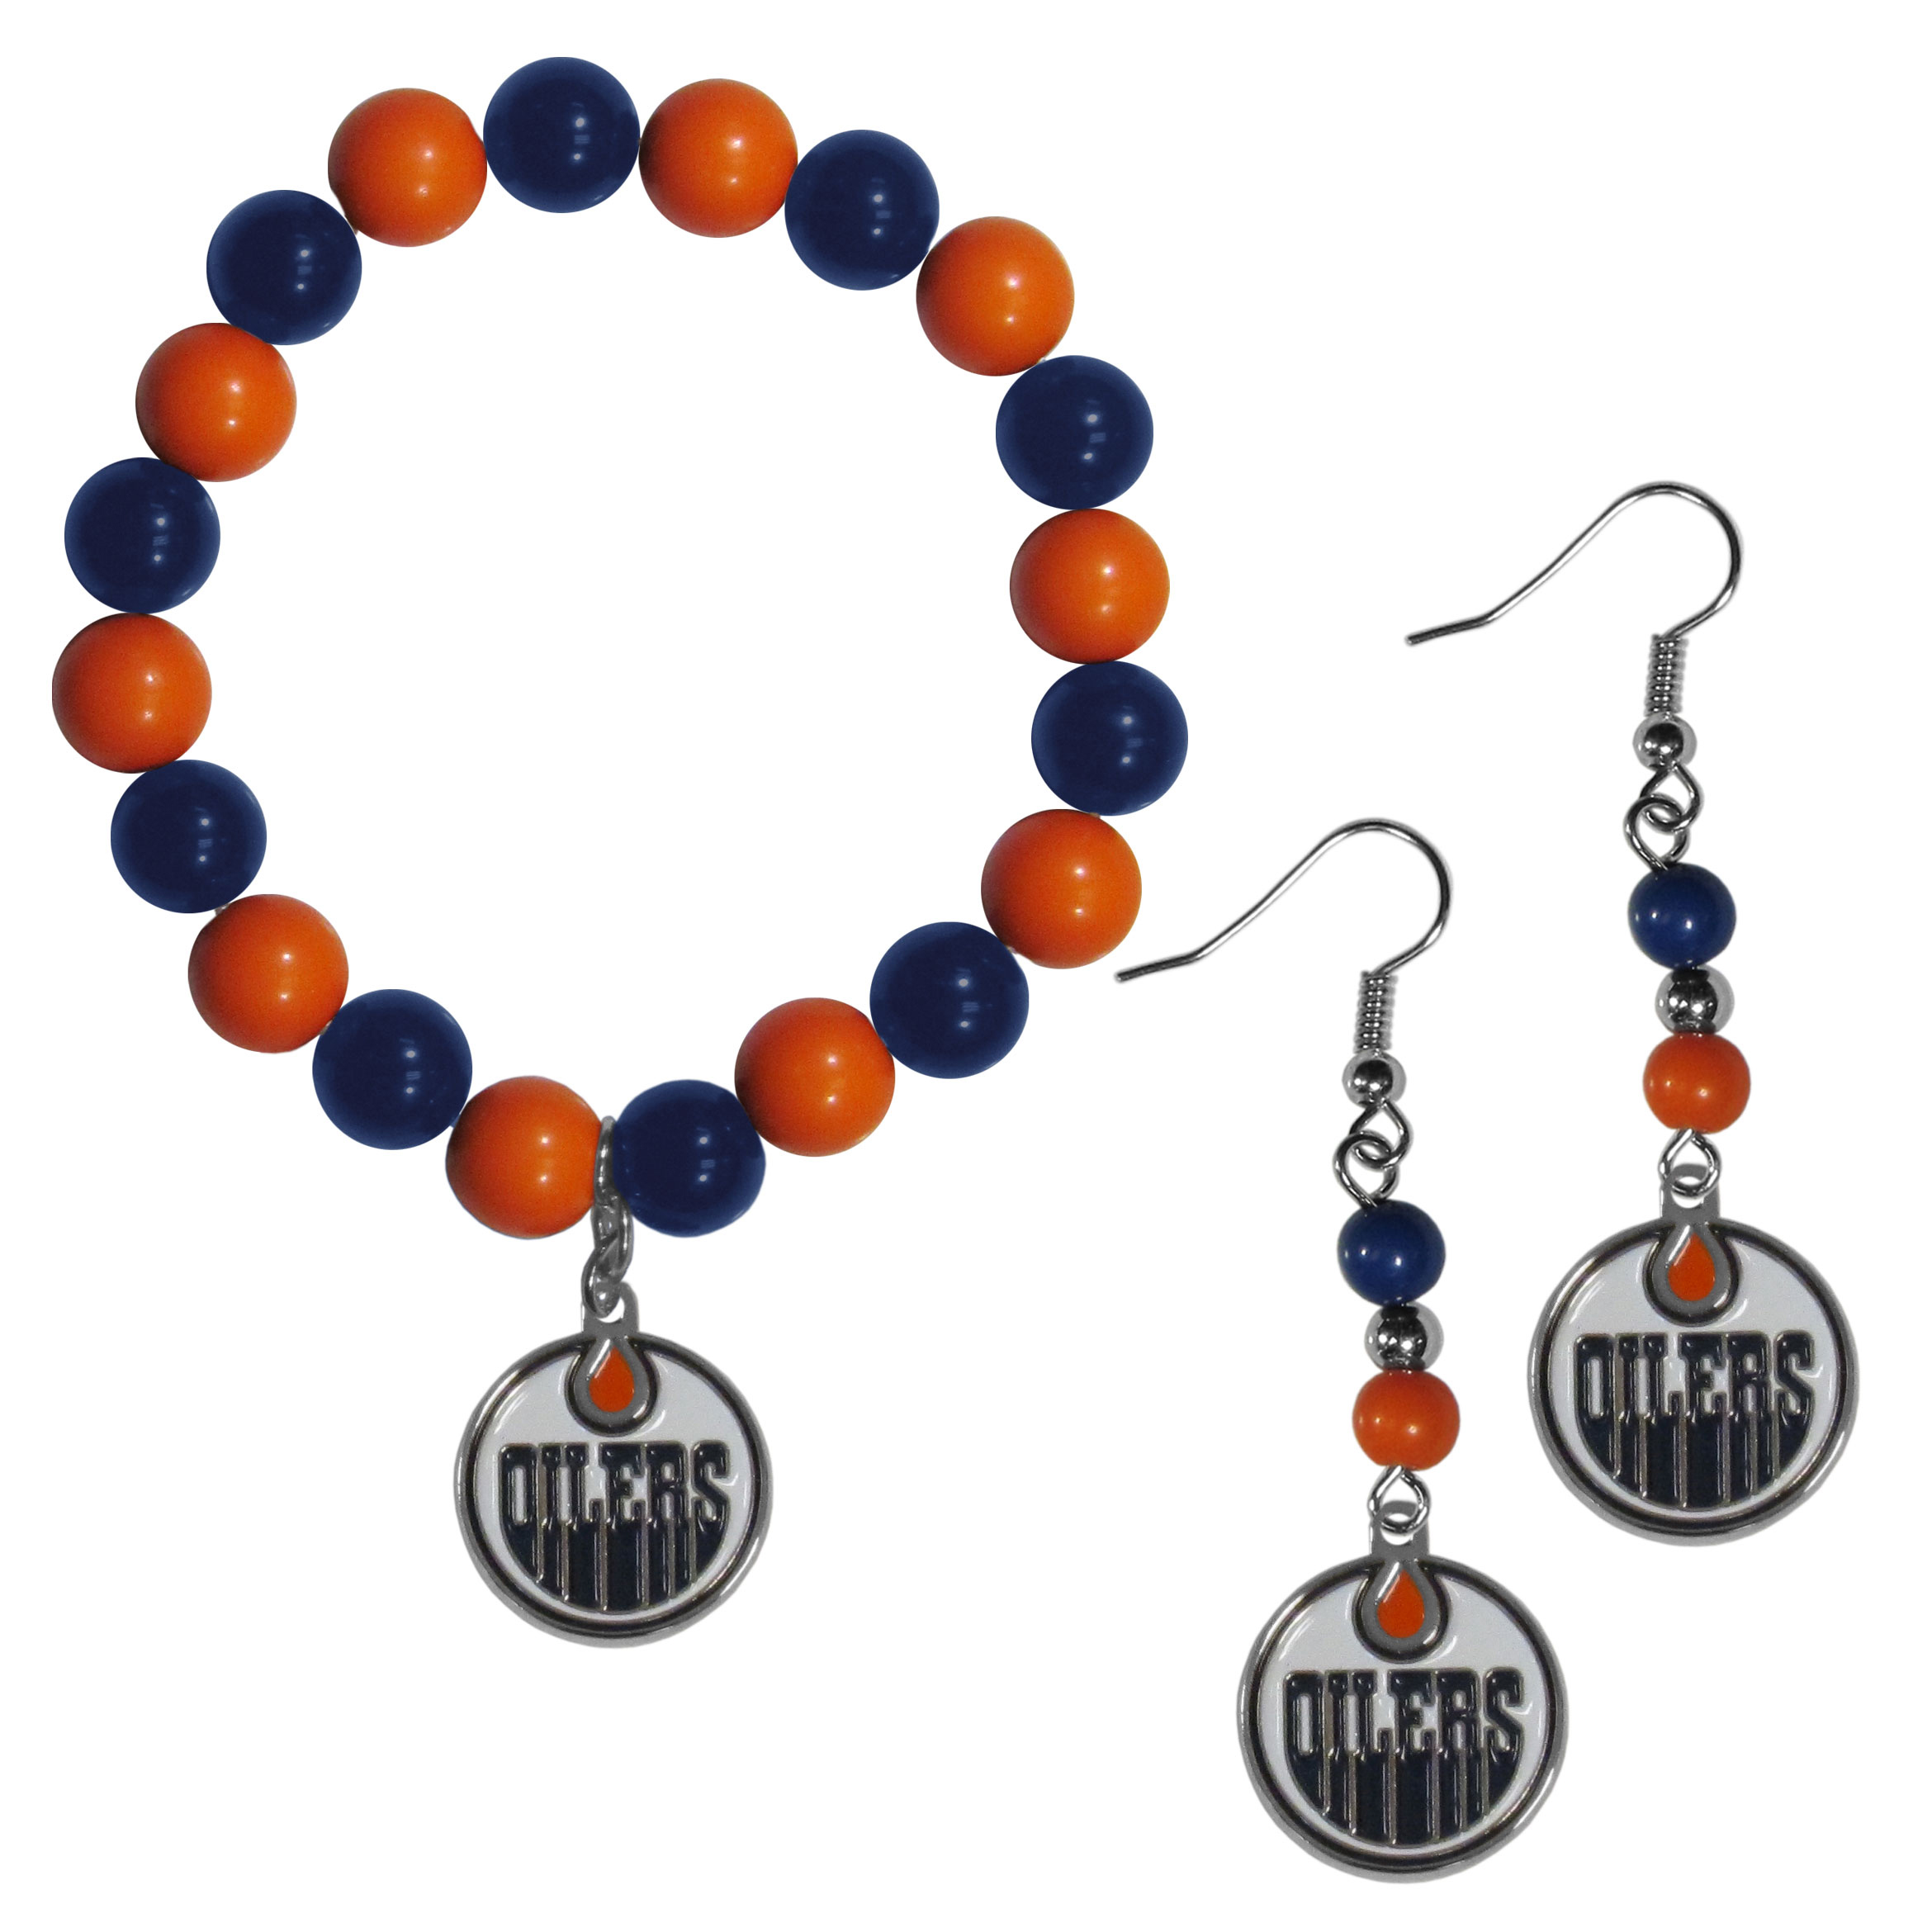 Edmonton Oilers® Fan Bead Earrings and Bracelet Set - This fun and colorful Edmonton Oilers® fan bead jewelry set is fun and casual with eye-catching beads in bright team colors. The fashionable dangle earrings feature a team colored beads that drop down to a carved and enameled charm. The stretch bracelet has larger matching beads that make a striking statement and have a matching team charm. These sassy yet sporty jewelry pieces make a perfect gift for any female fan. Spice up your game-day outfit with these fun colorful earrings and bracelet that are also cute enough for any day.